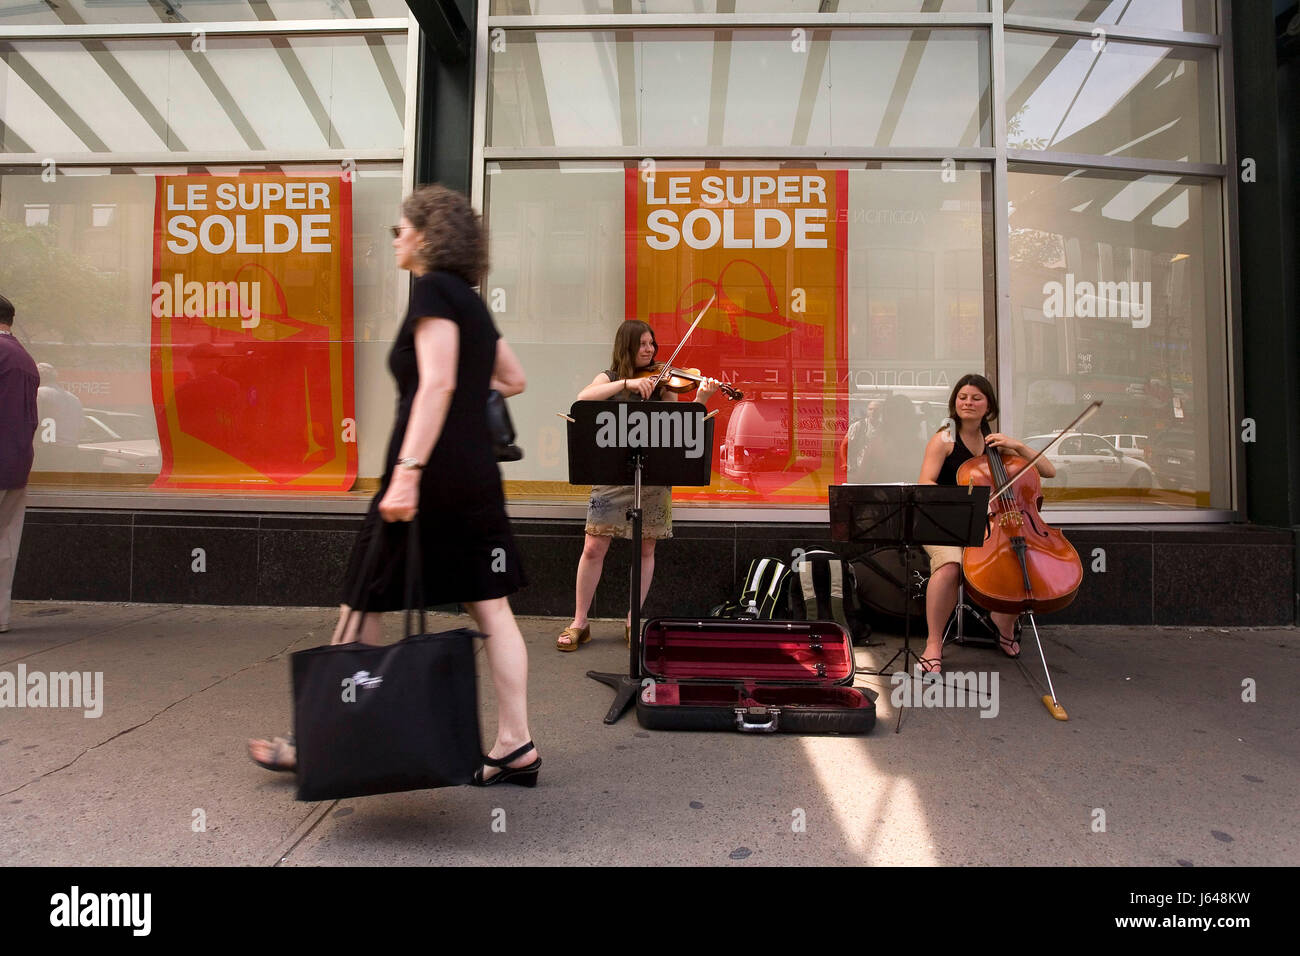 Soldes Montreal Soldes Stock Photos Soldes Stock Images Alamy